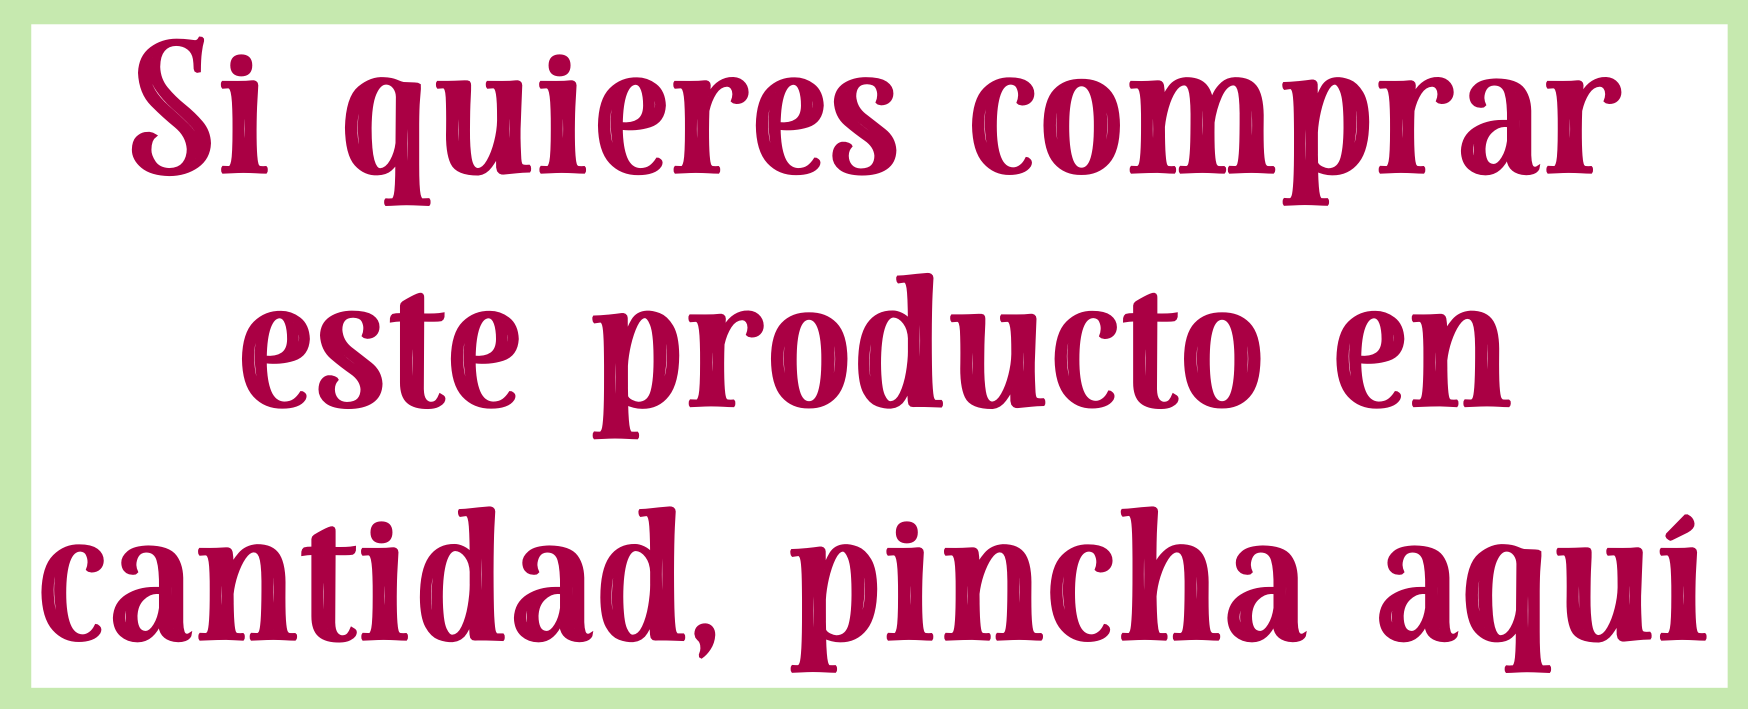 producto%20x%20cantidad_1.png